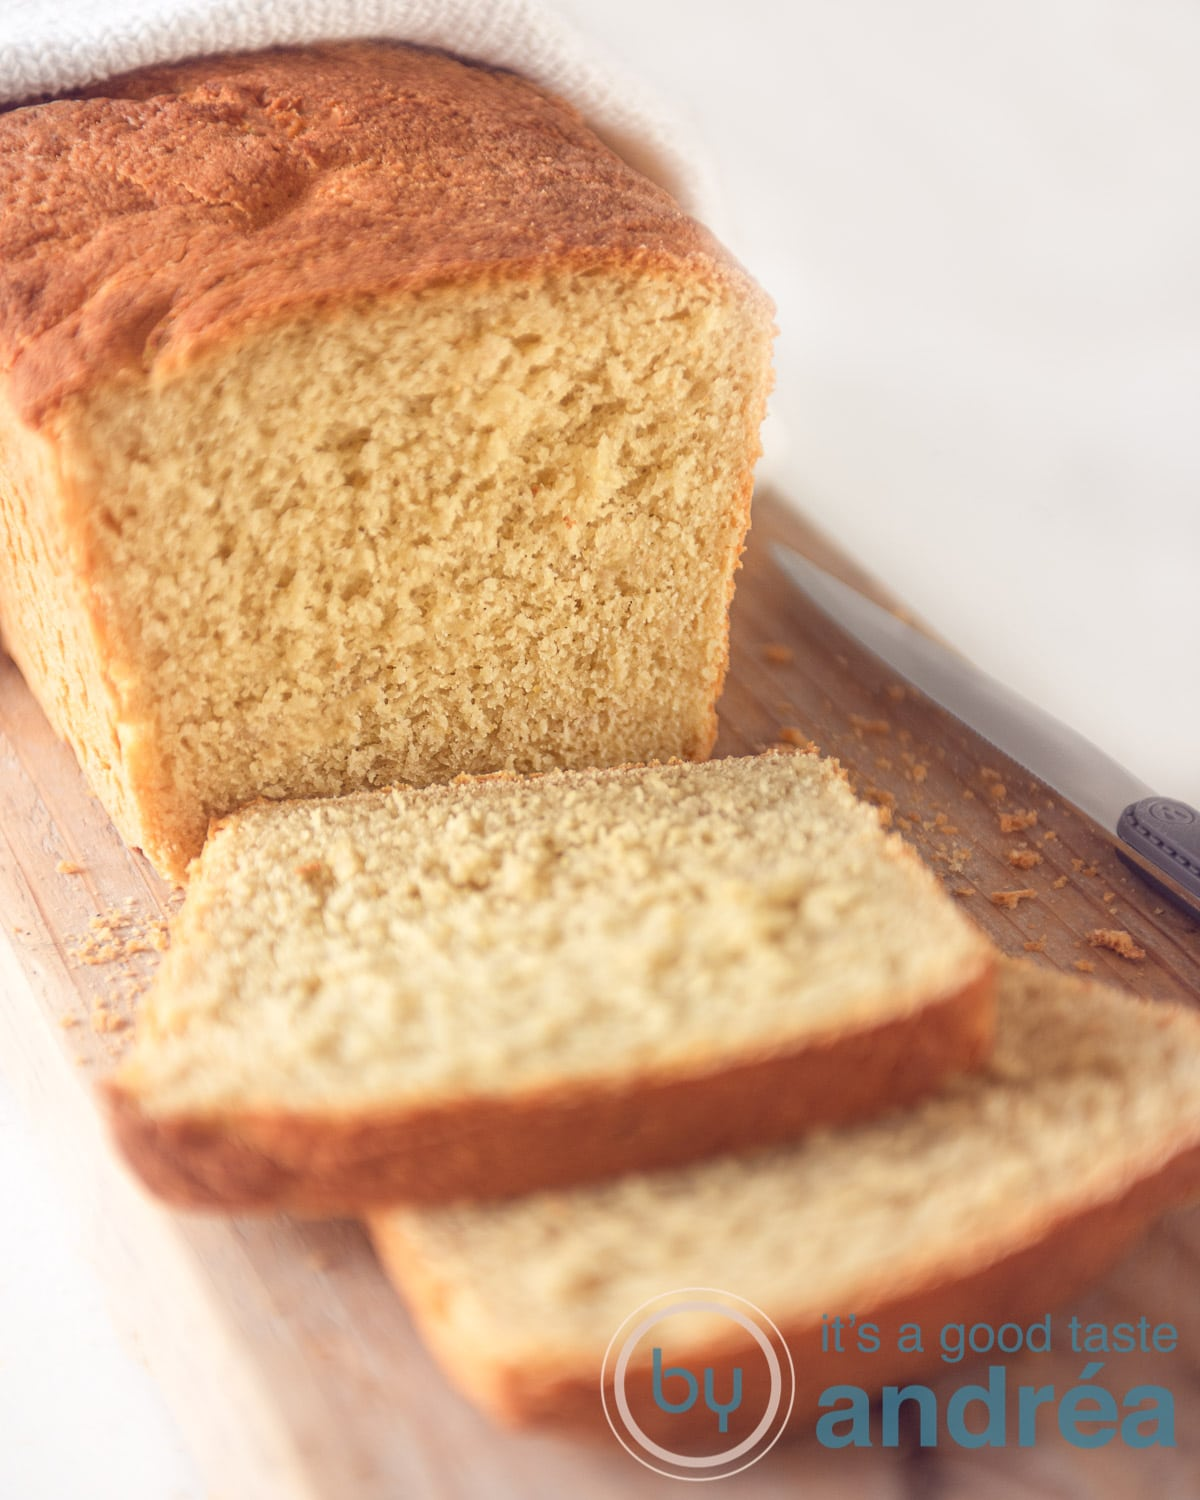 A loaf cornbread on a wooden bord. Two slices cut off.